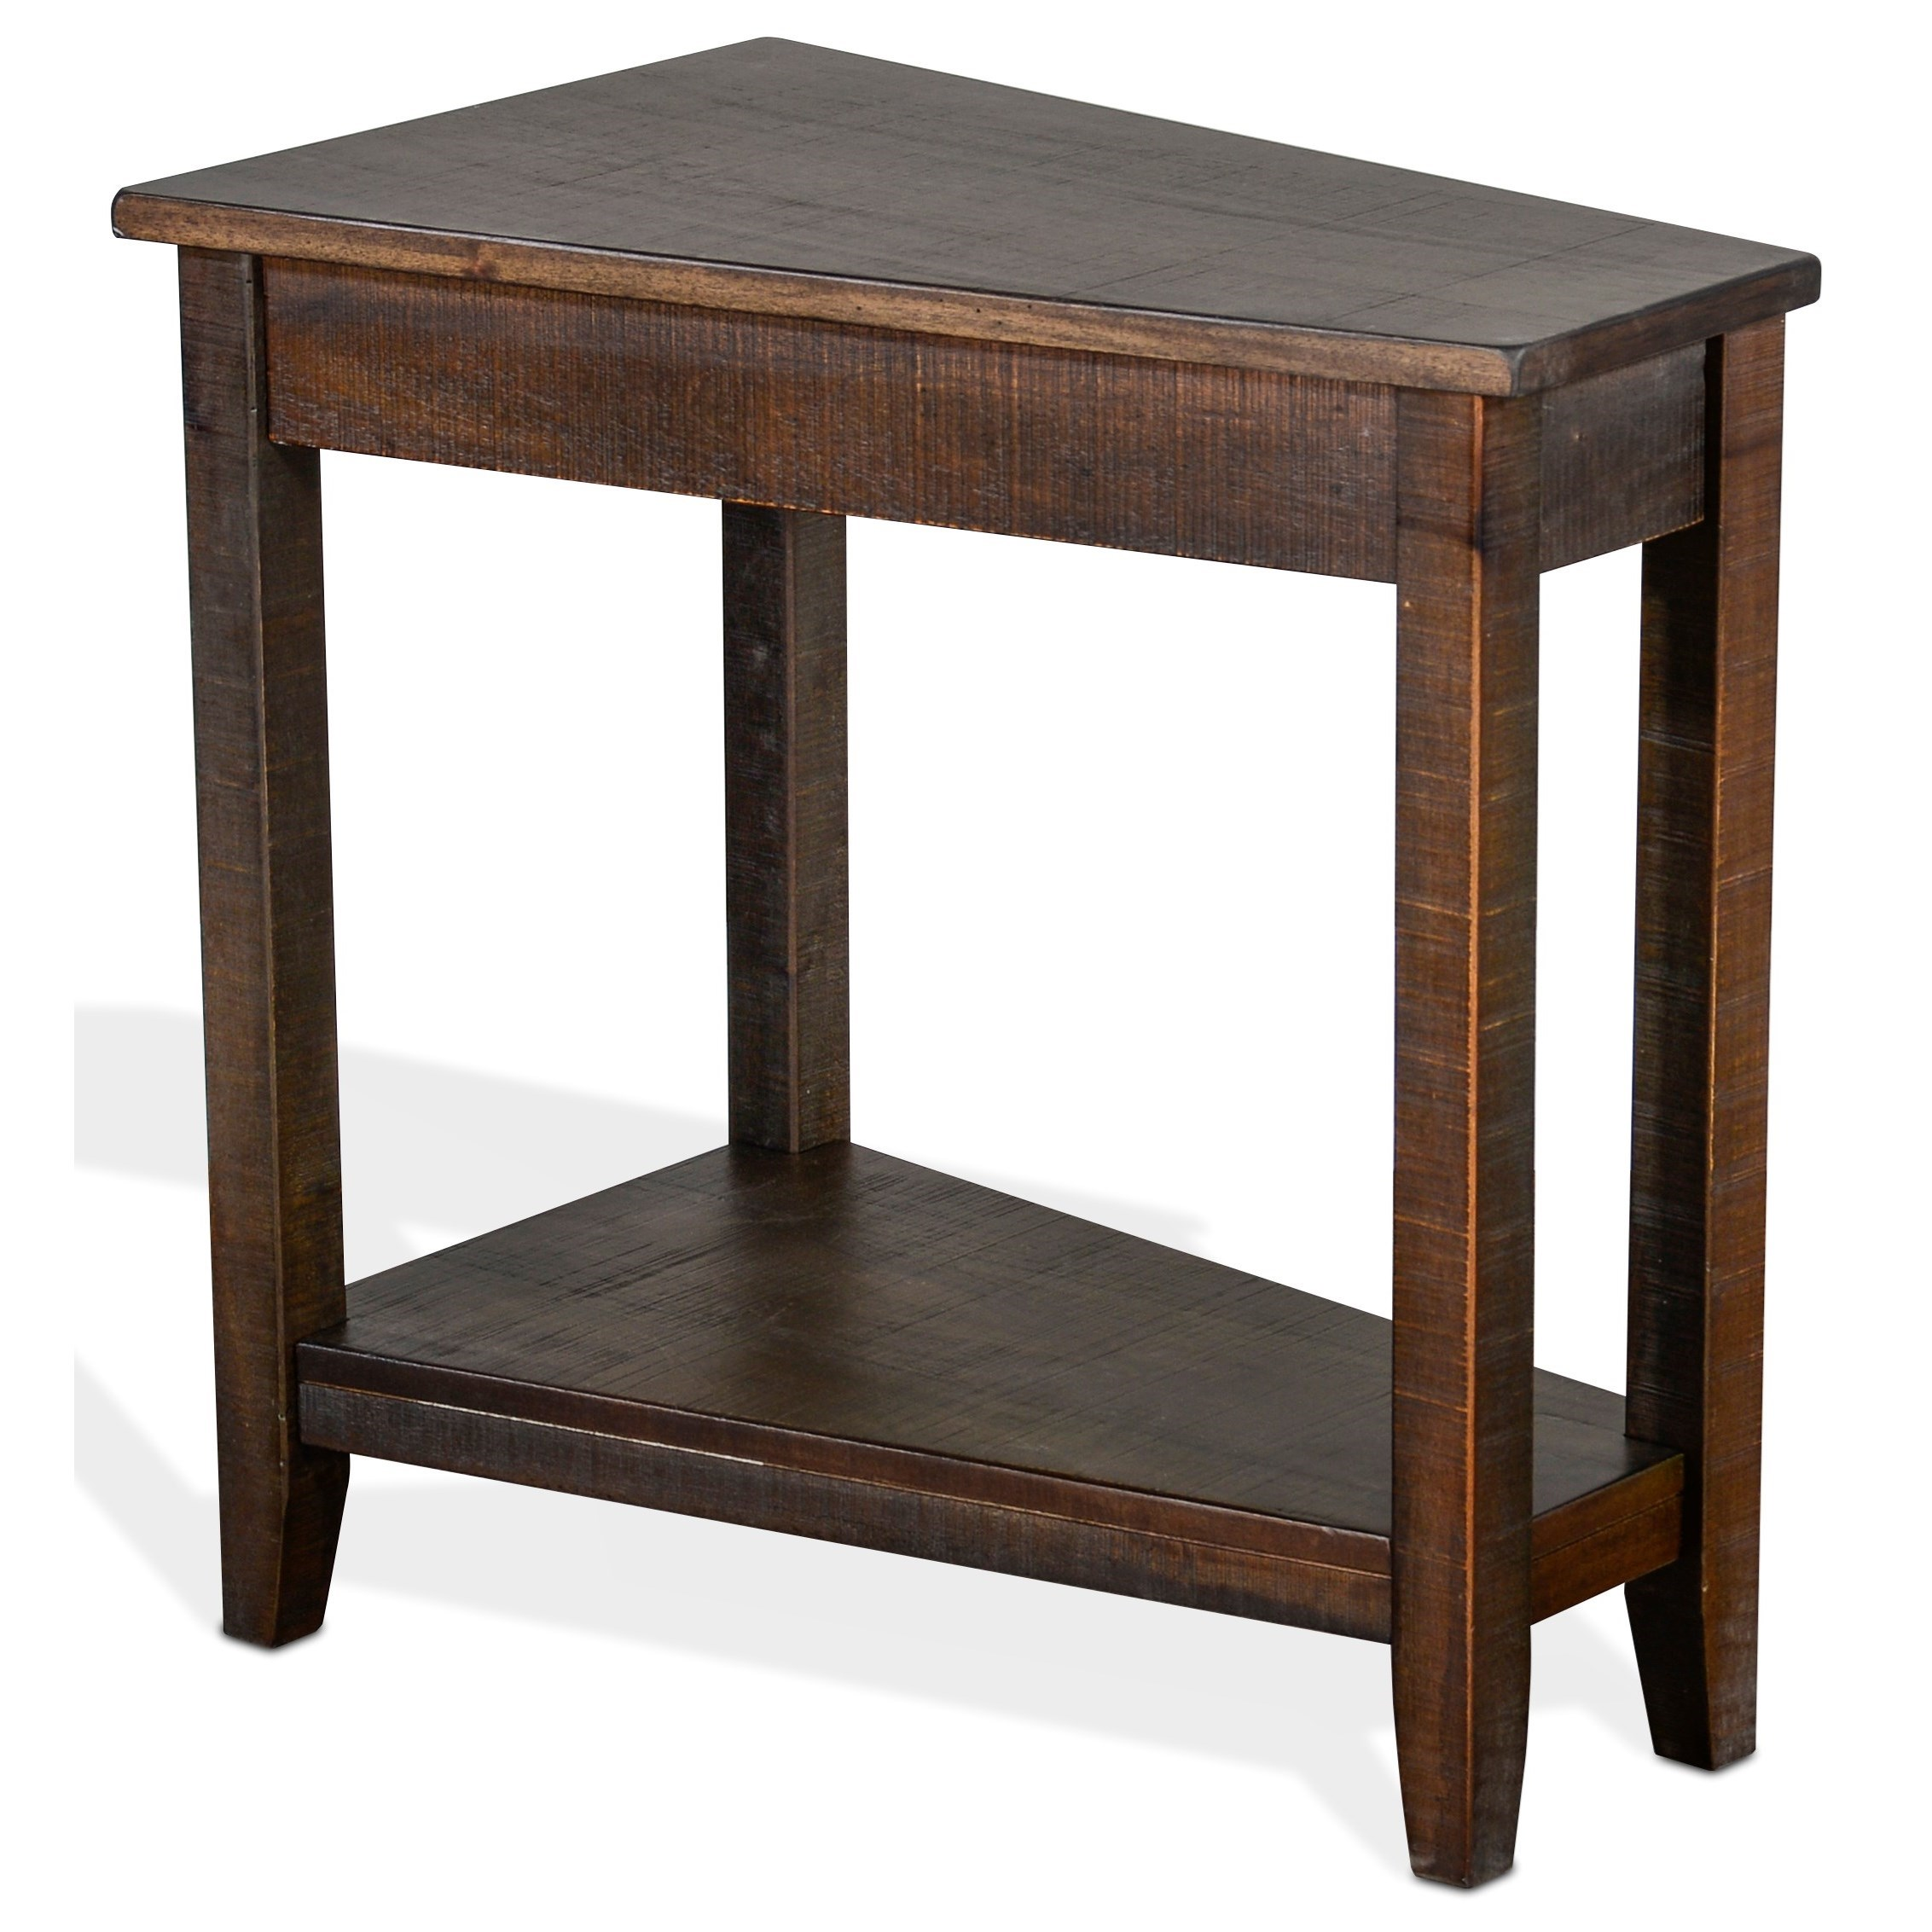 2226 Chair Side Table by Sunny Designs at Suburban Furniture